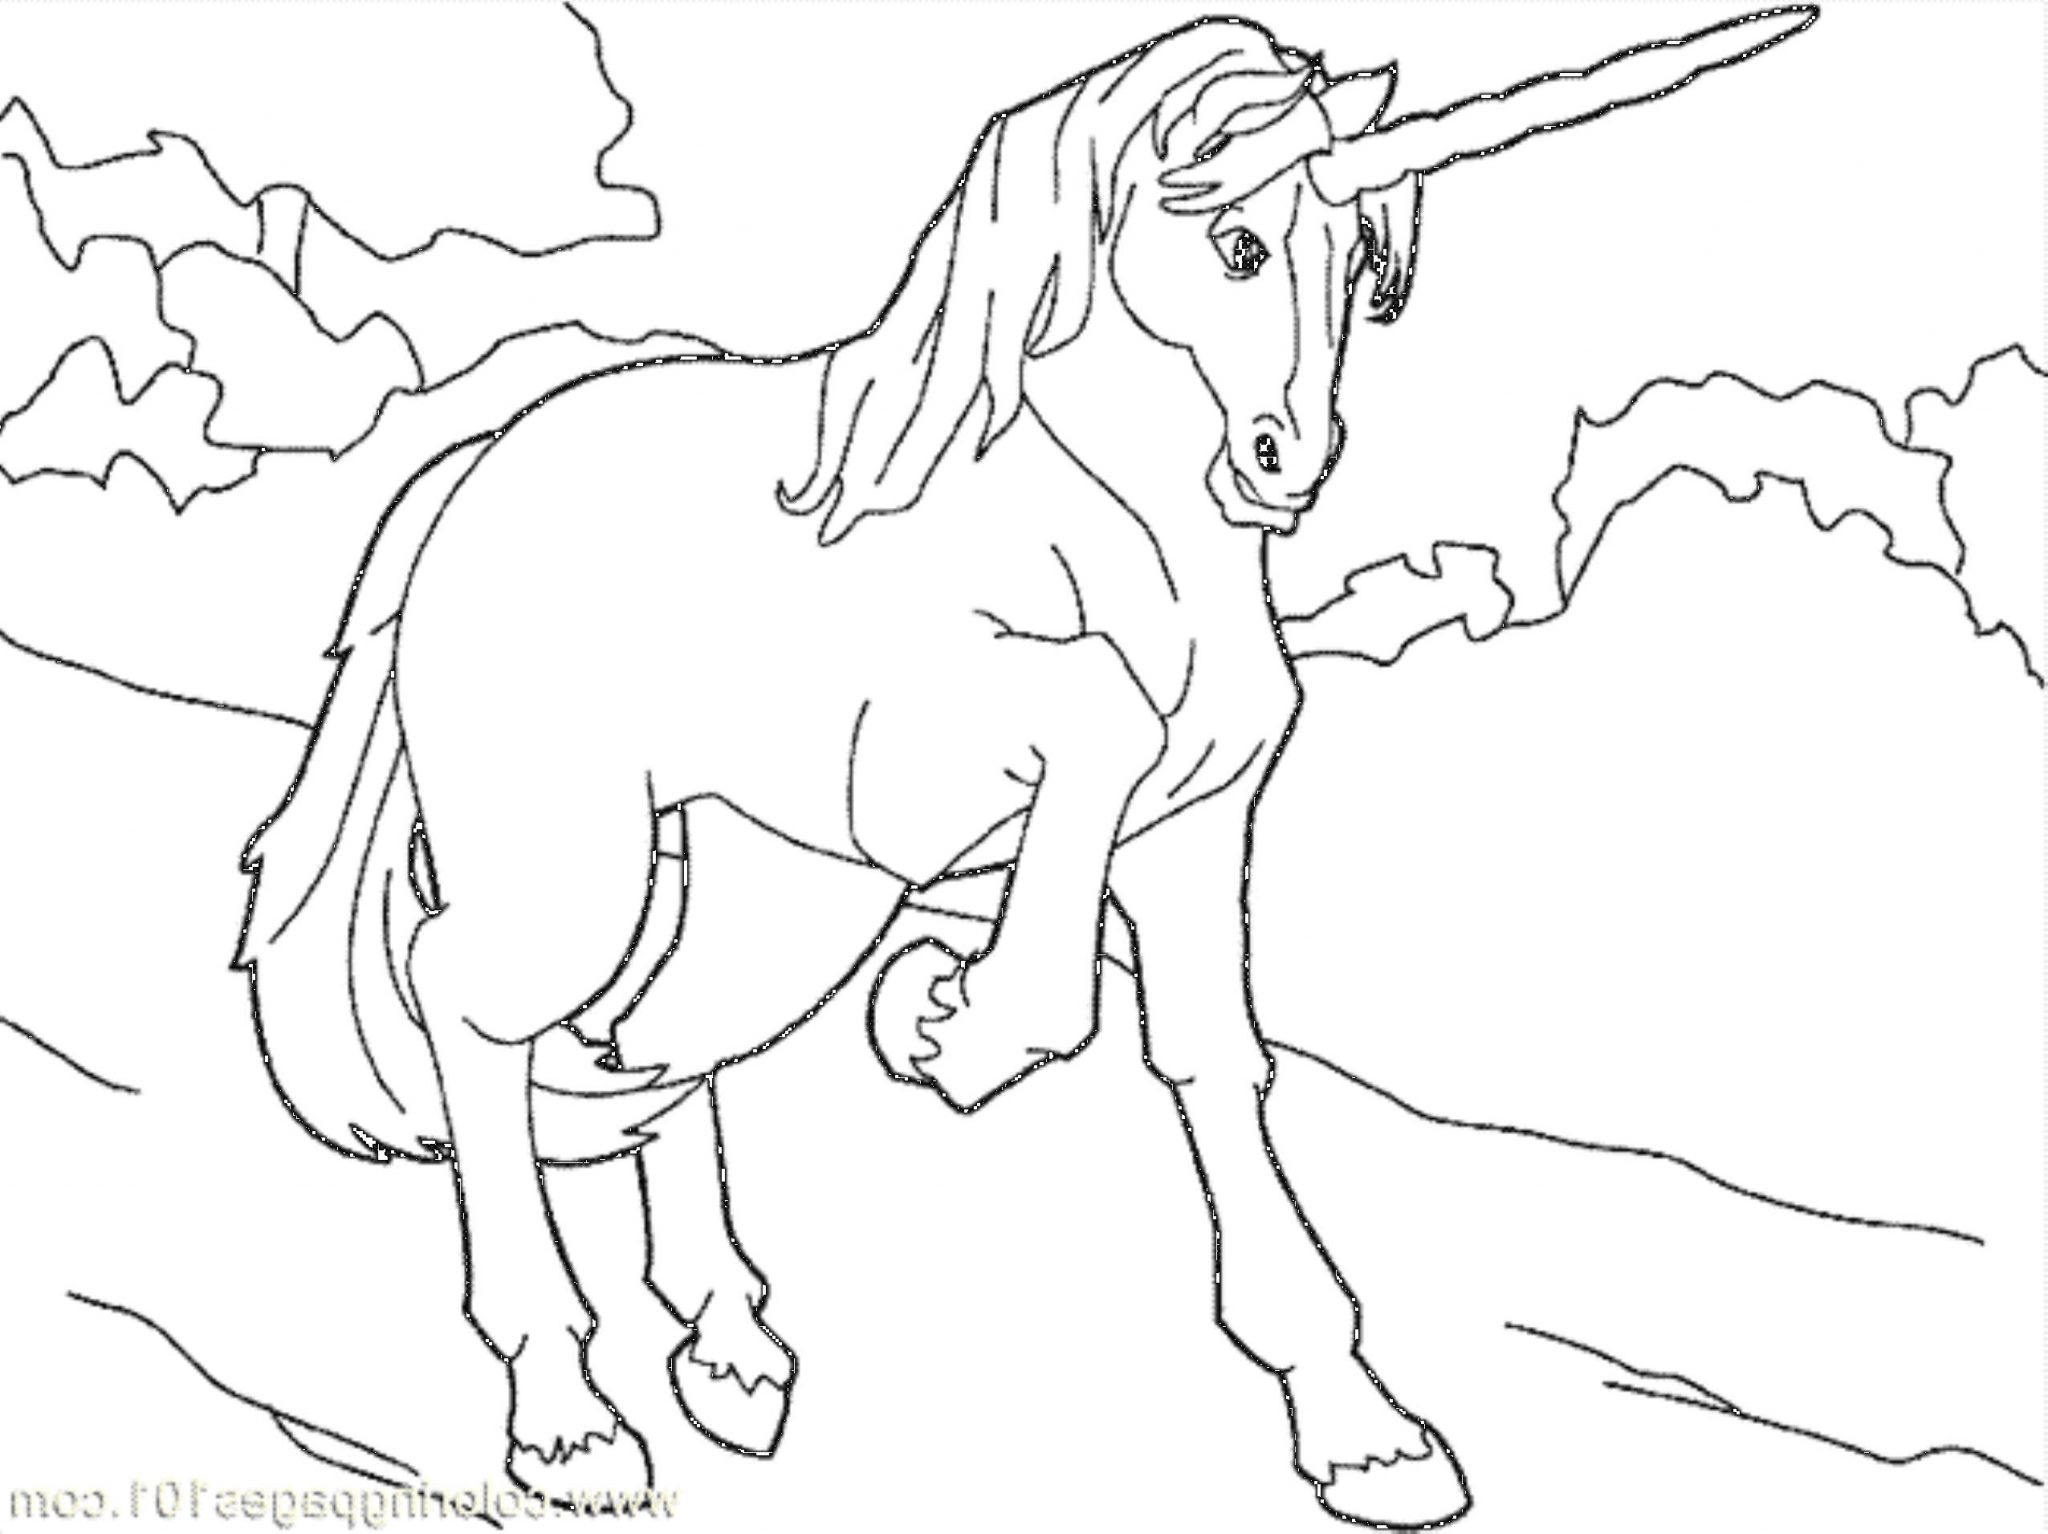 unicorns coloring pages for kids | Print & Download - Unicorn Coloring Pages for Children